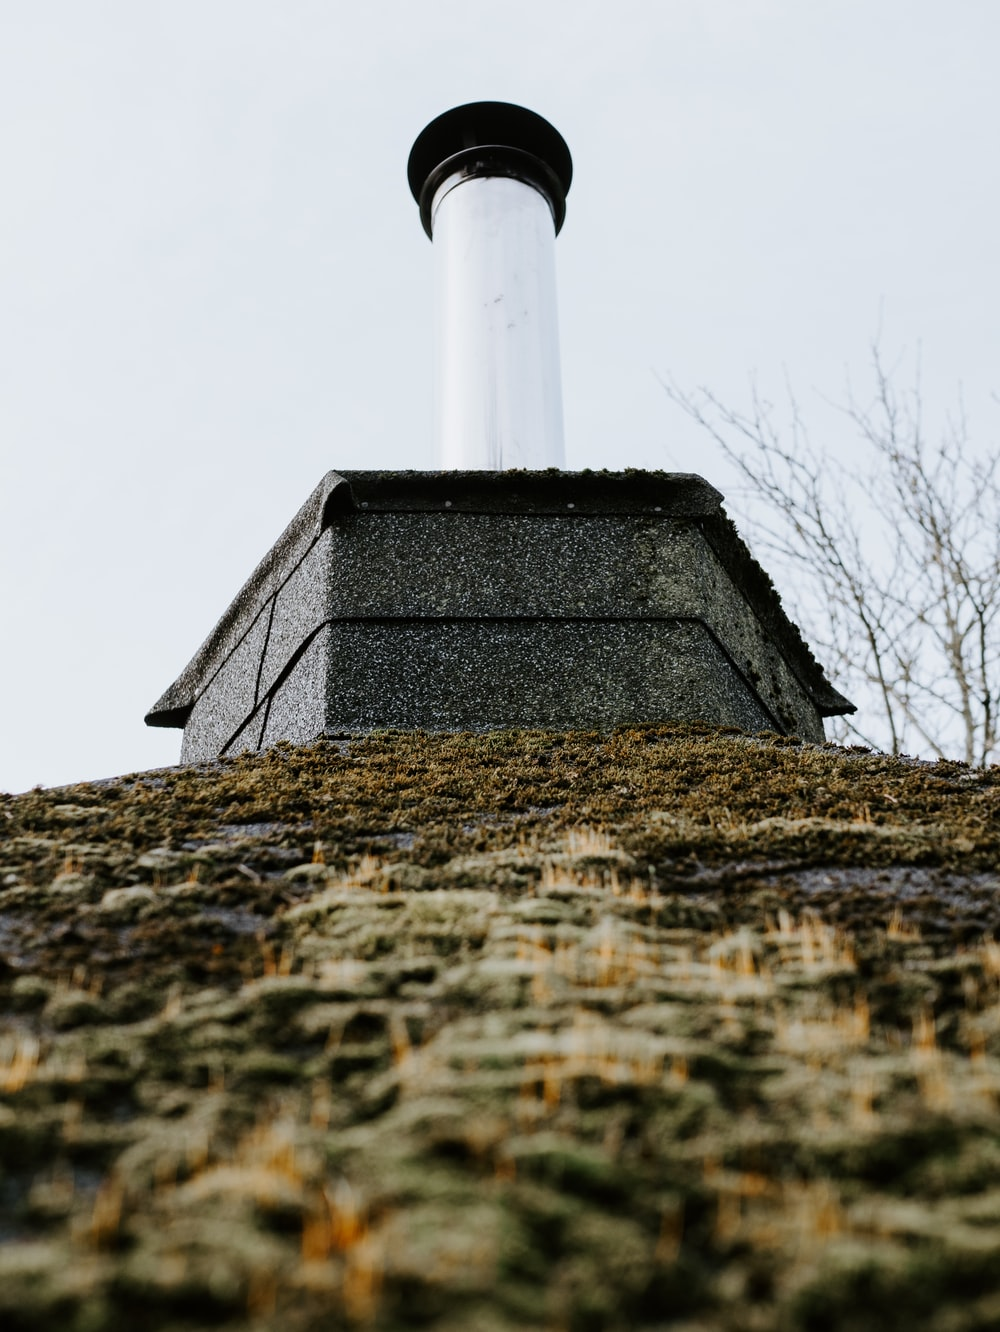 white and black chimney during day